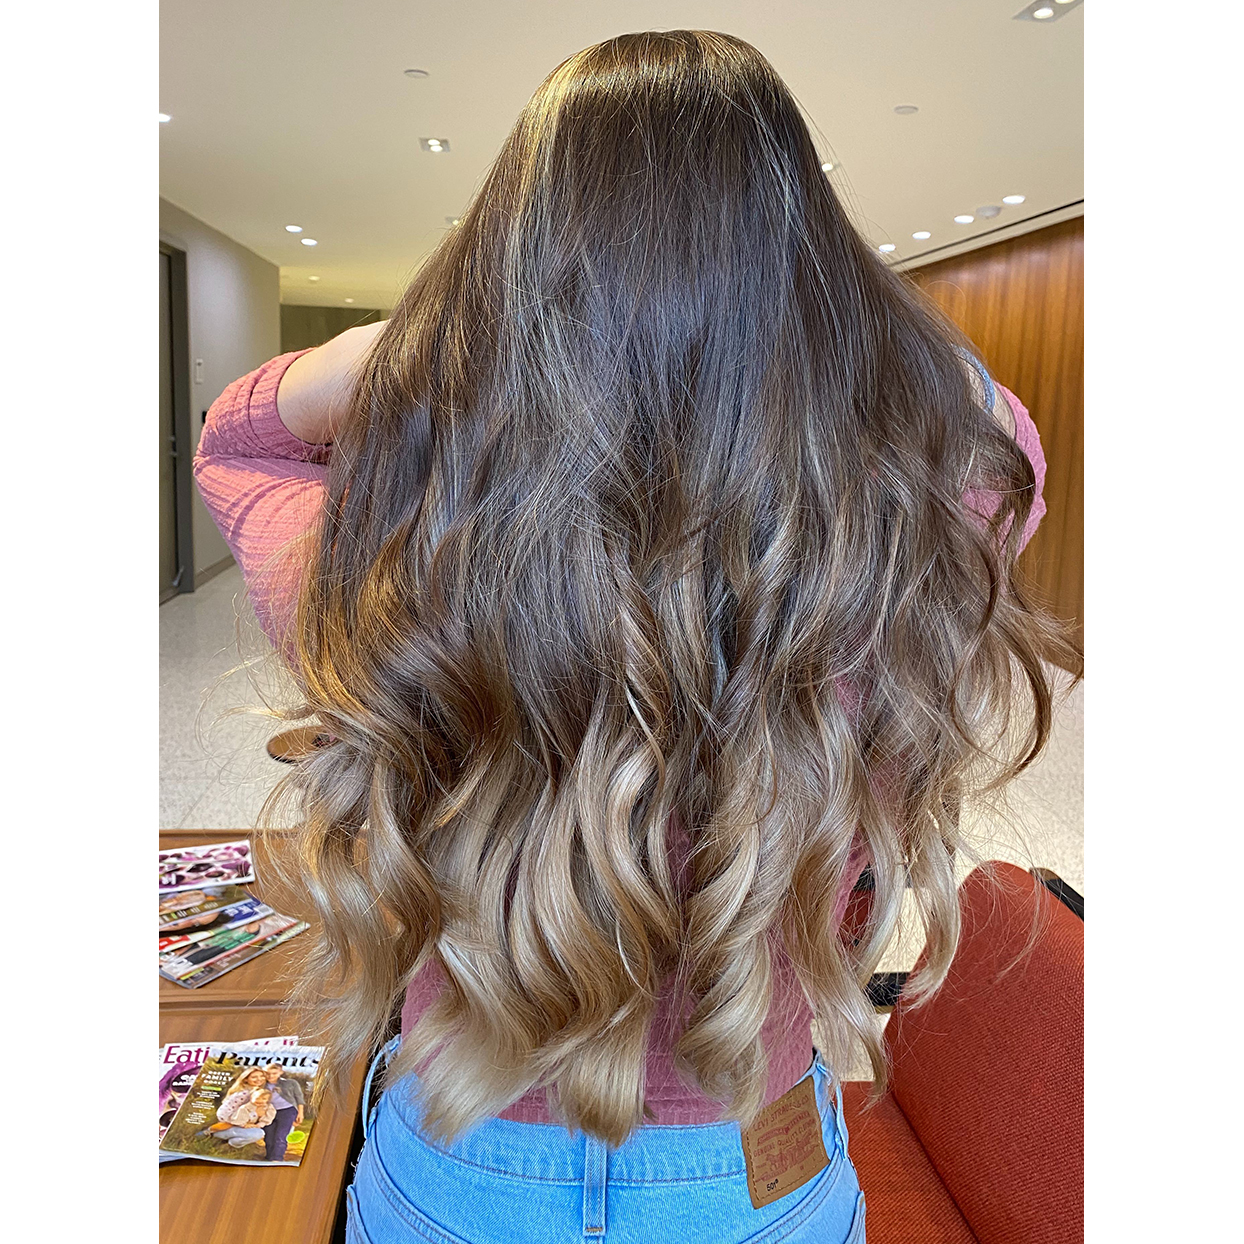 nume-curling-wand-embed.jpg